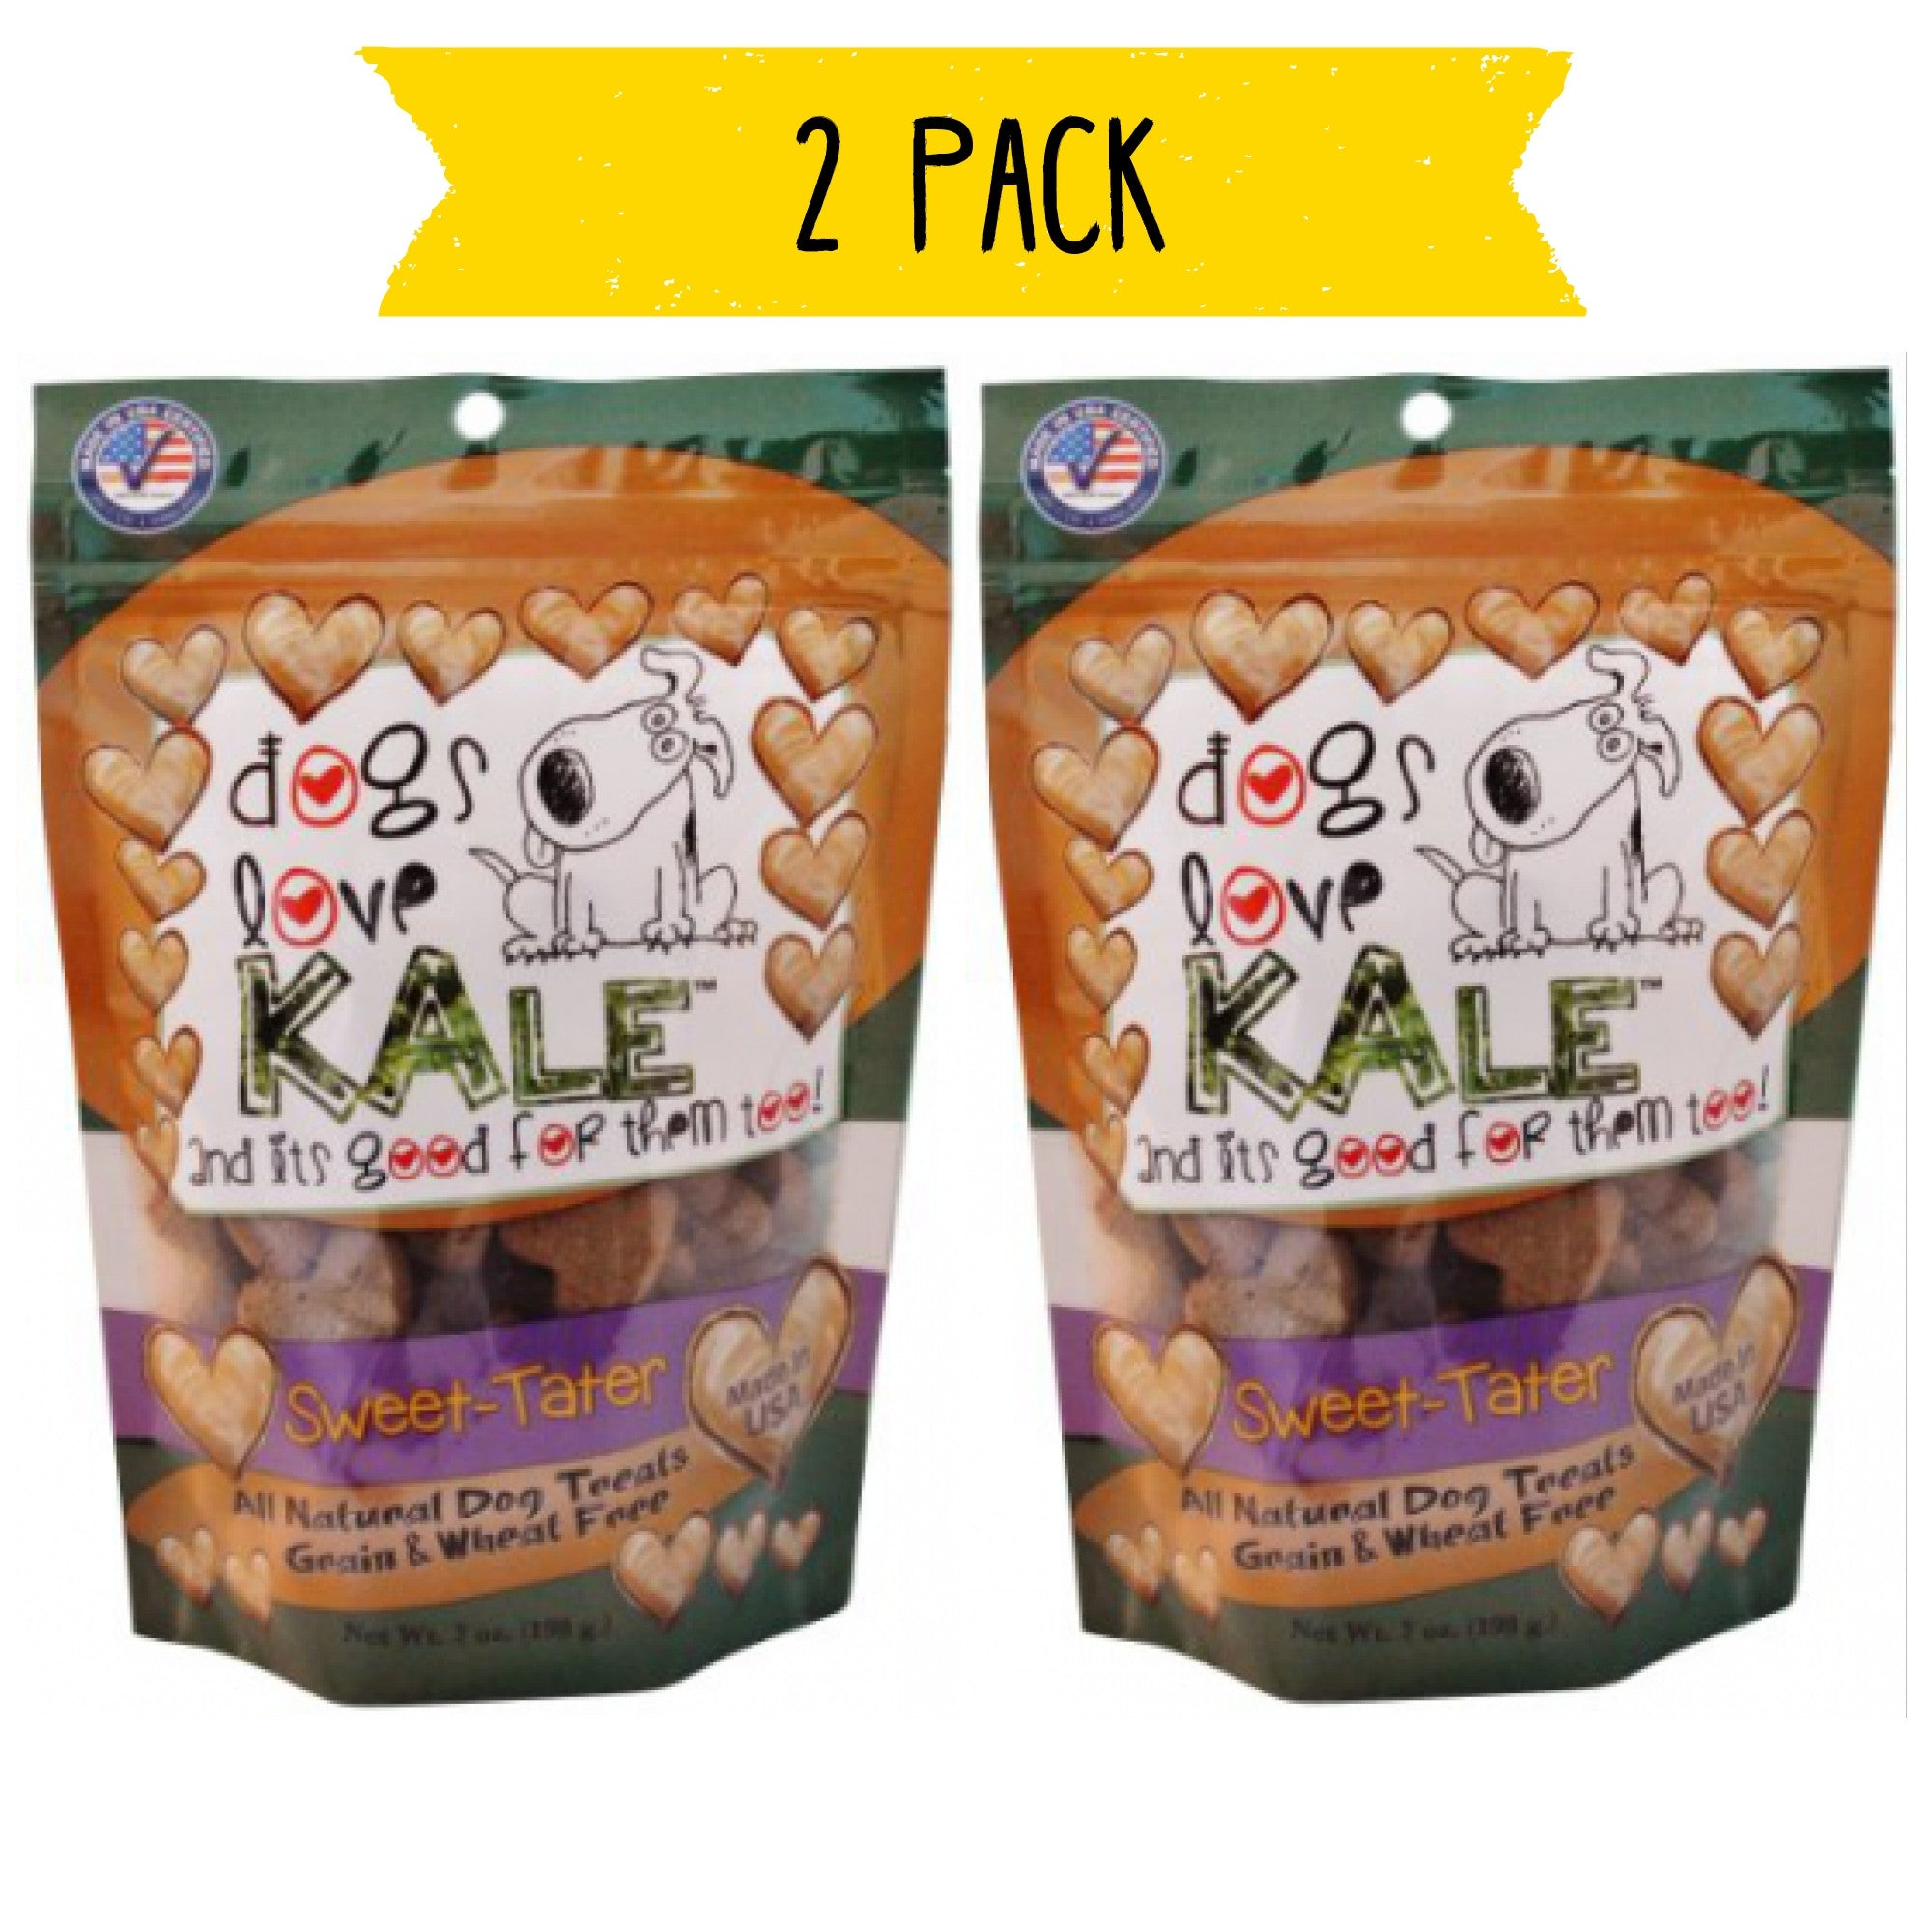 Dogs Love Kale Grain Free Treats - Sweet Tater